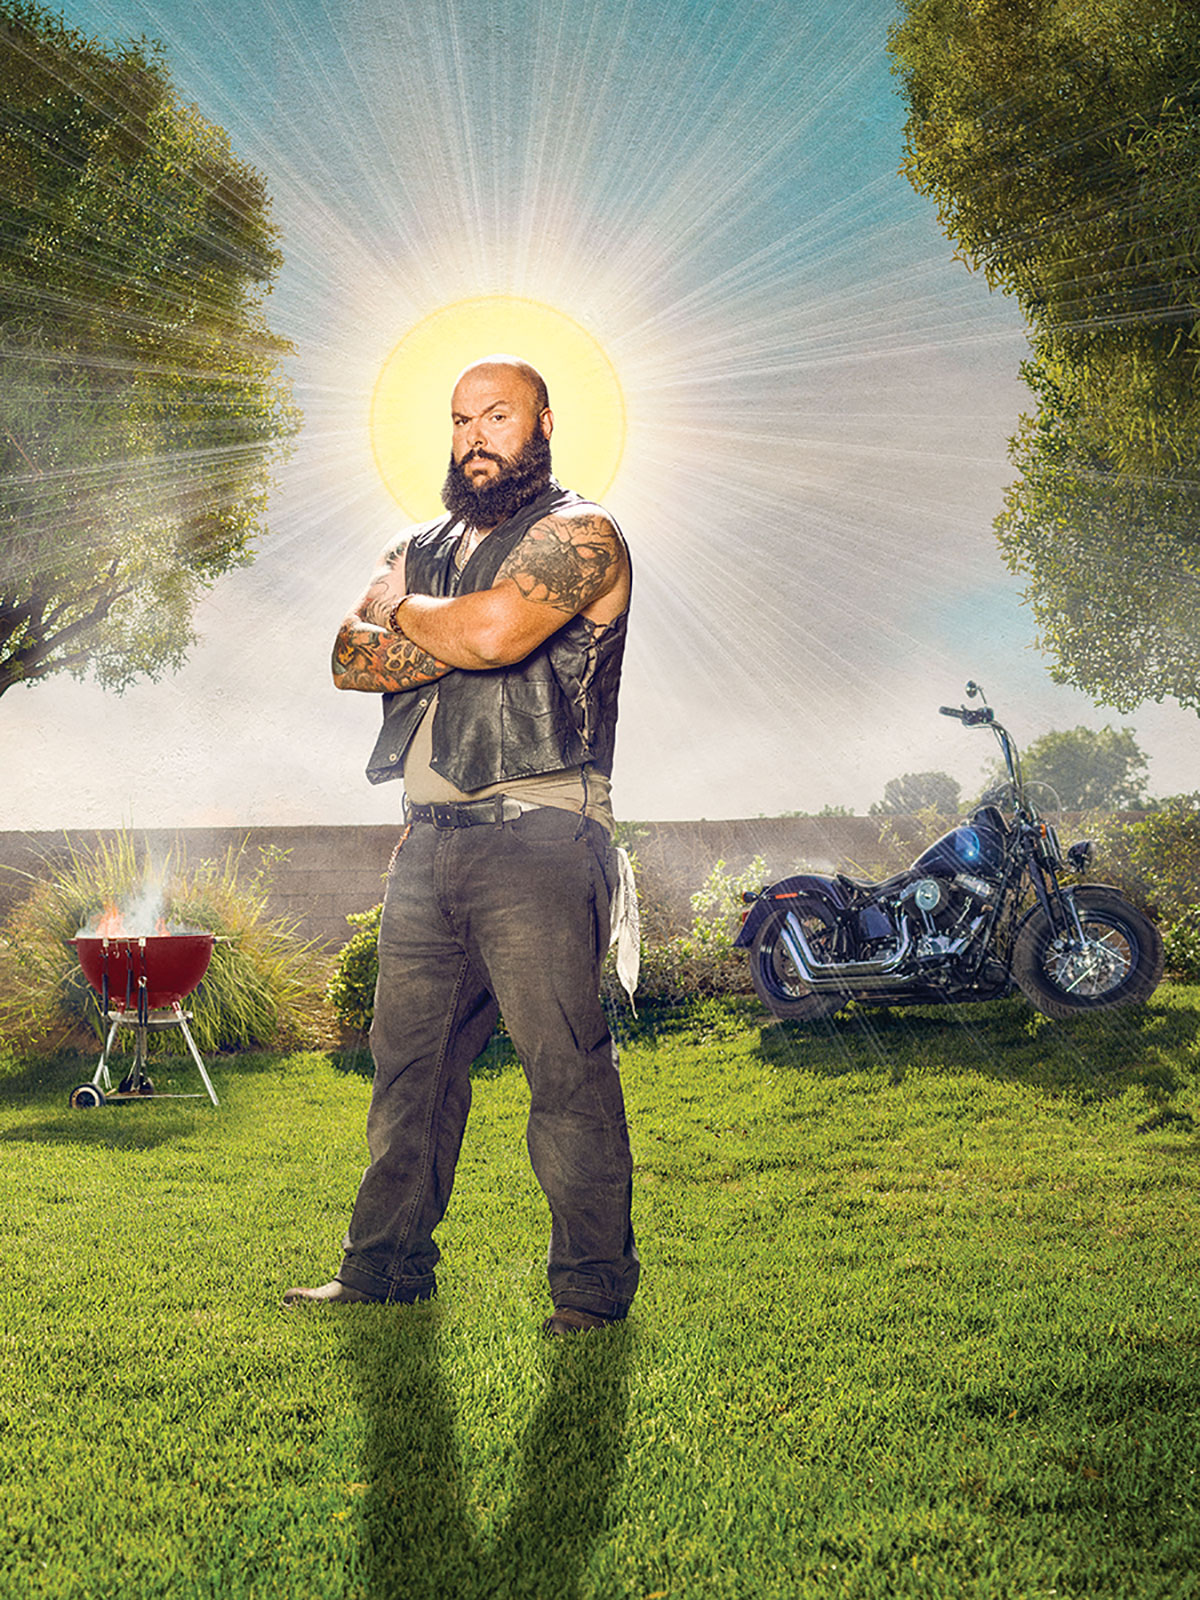 A biker stands in his lawn with a barbecue and his motorcyle in the background.